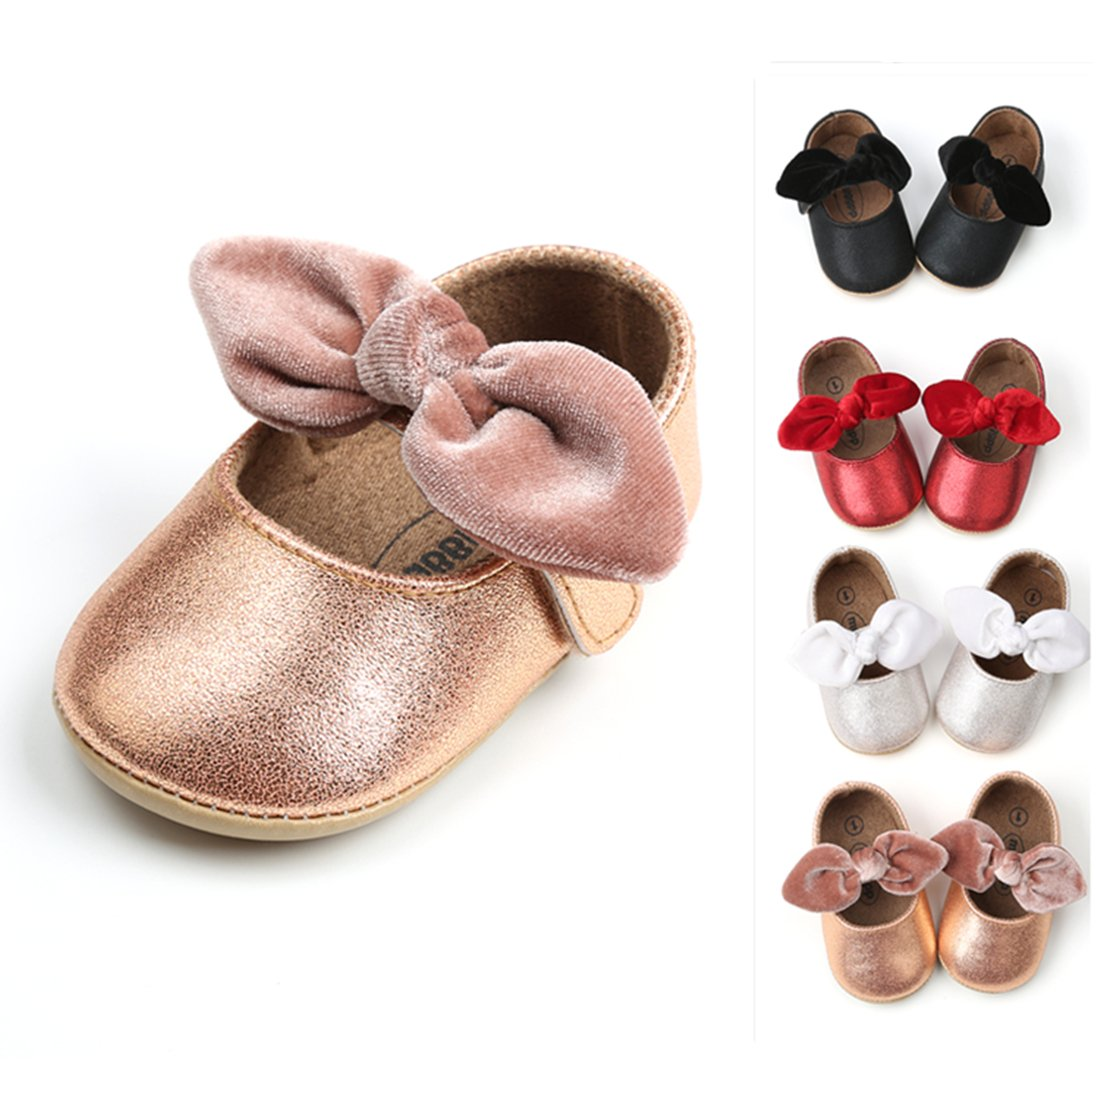 RVROVIC Baby Girls Mary Jane Flats Anti-Slip Rubber Sole Bow Toddler Princess Dress Shoes